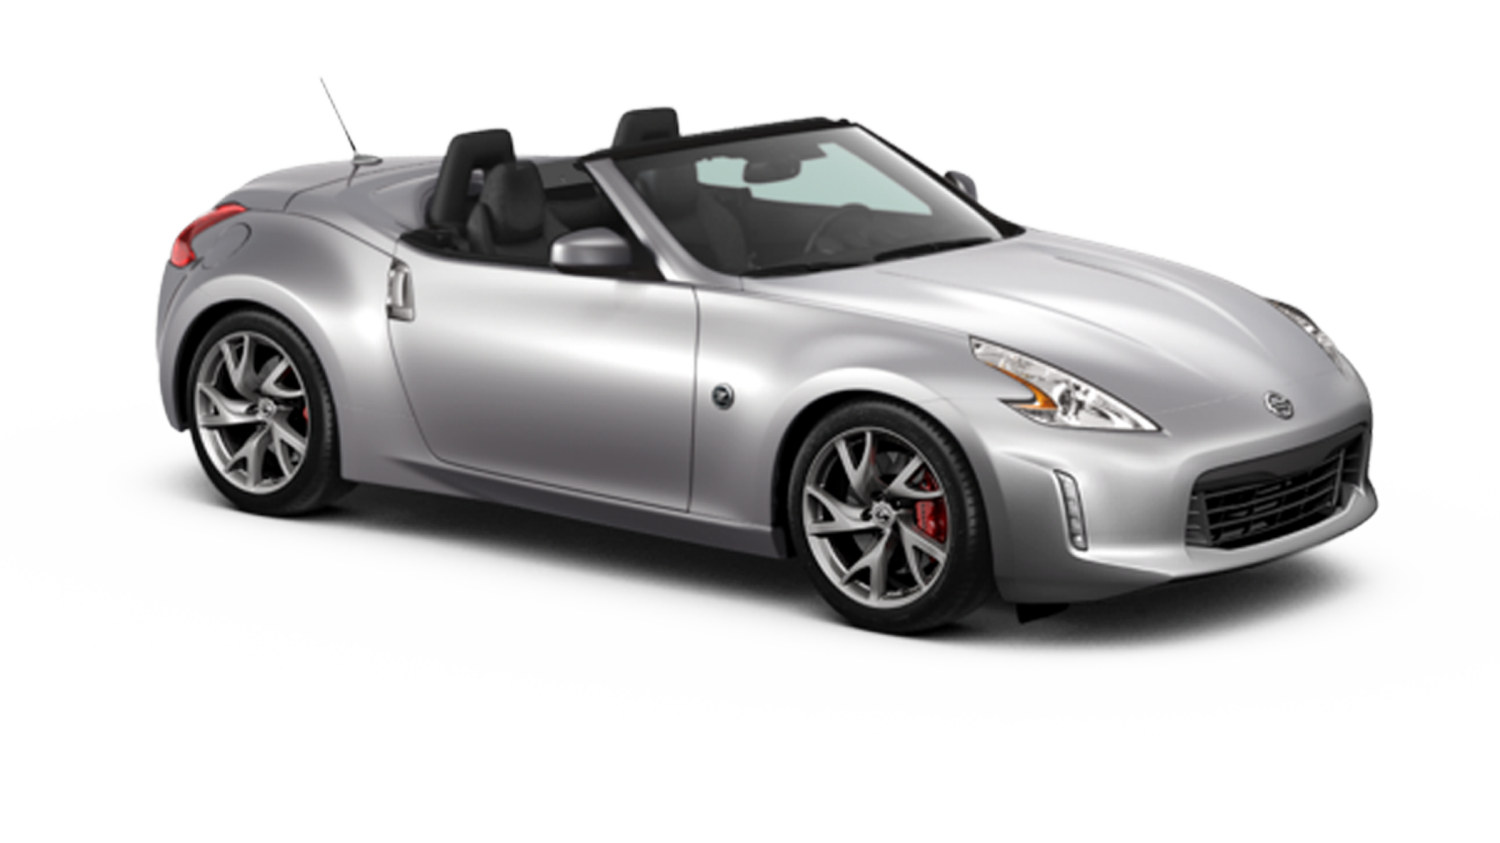 Nissan 370z Roadster Pack - 3/4 front view